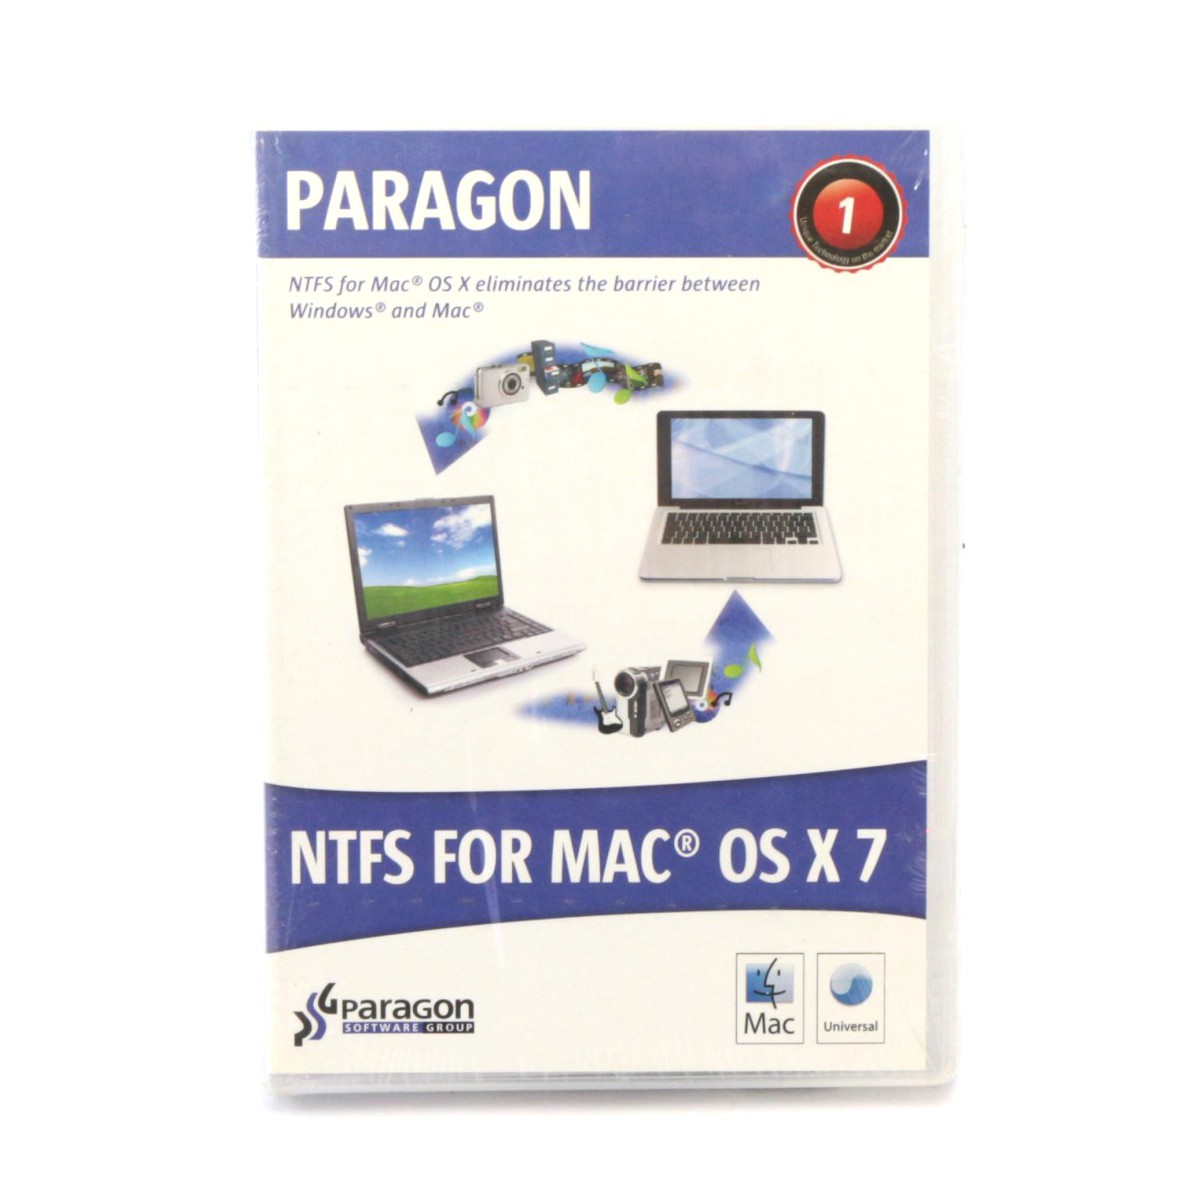 NTFS for Mac OS X 7 [Paragon]